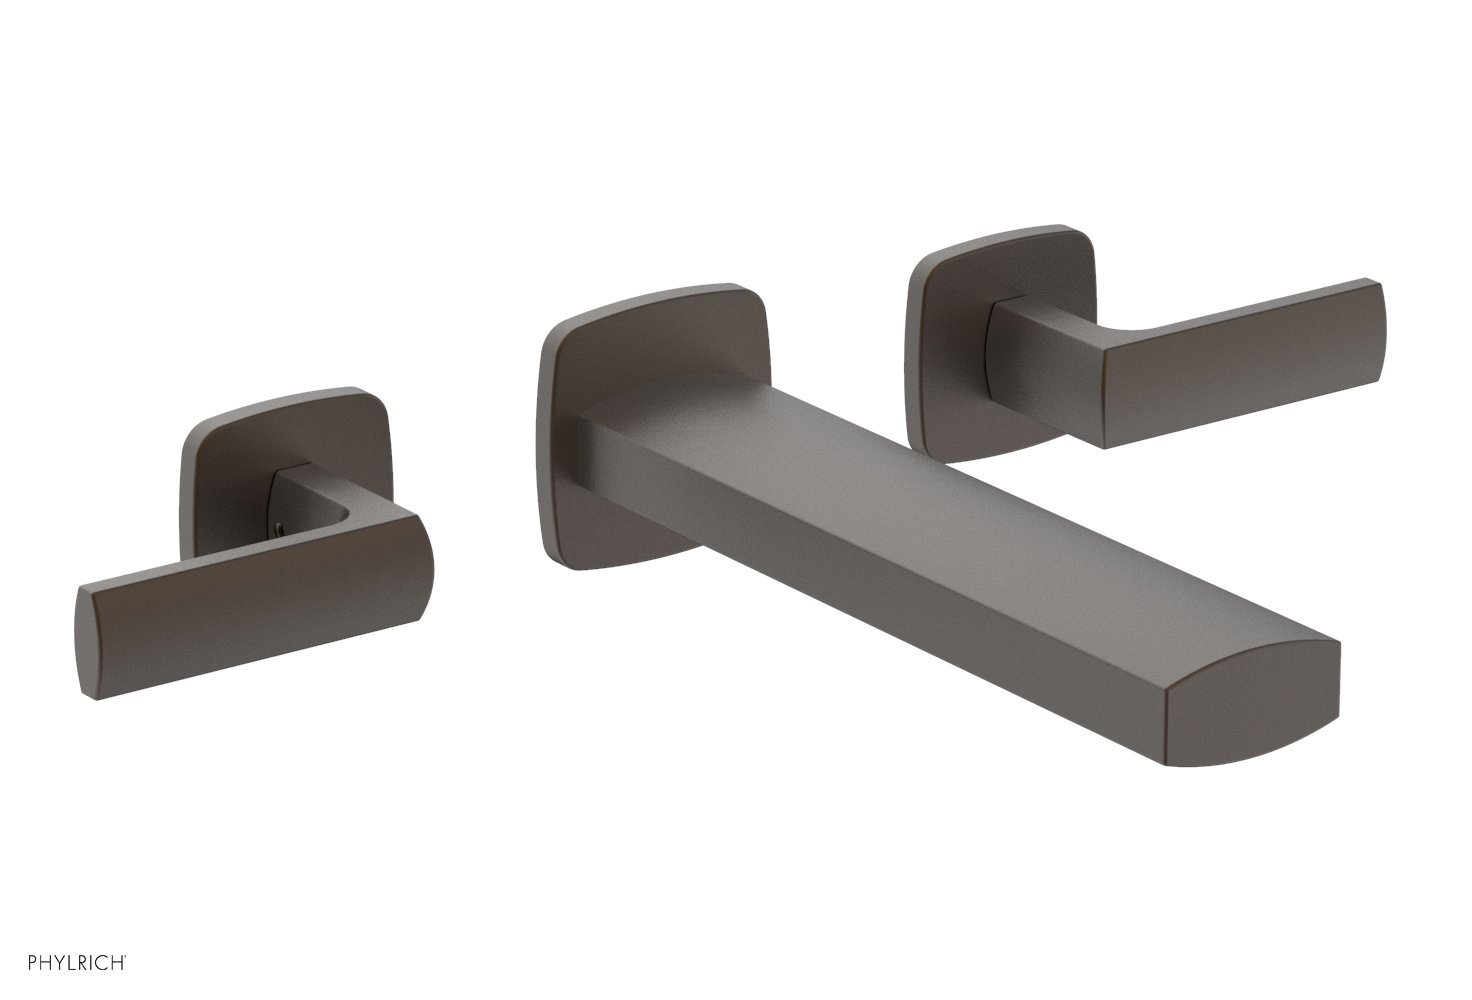 Phylrich 181-57-10B RADI Wall Tub Set - Lever Handles - Oil Rubbed Bronze